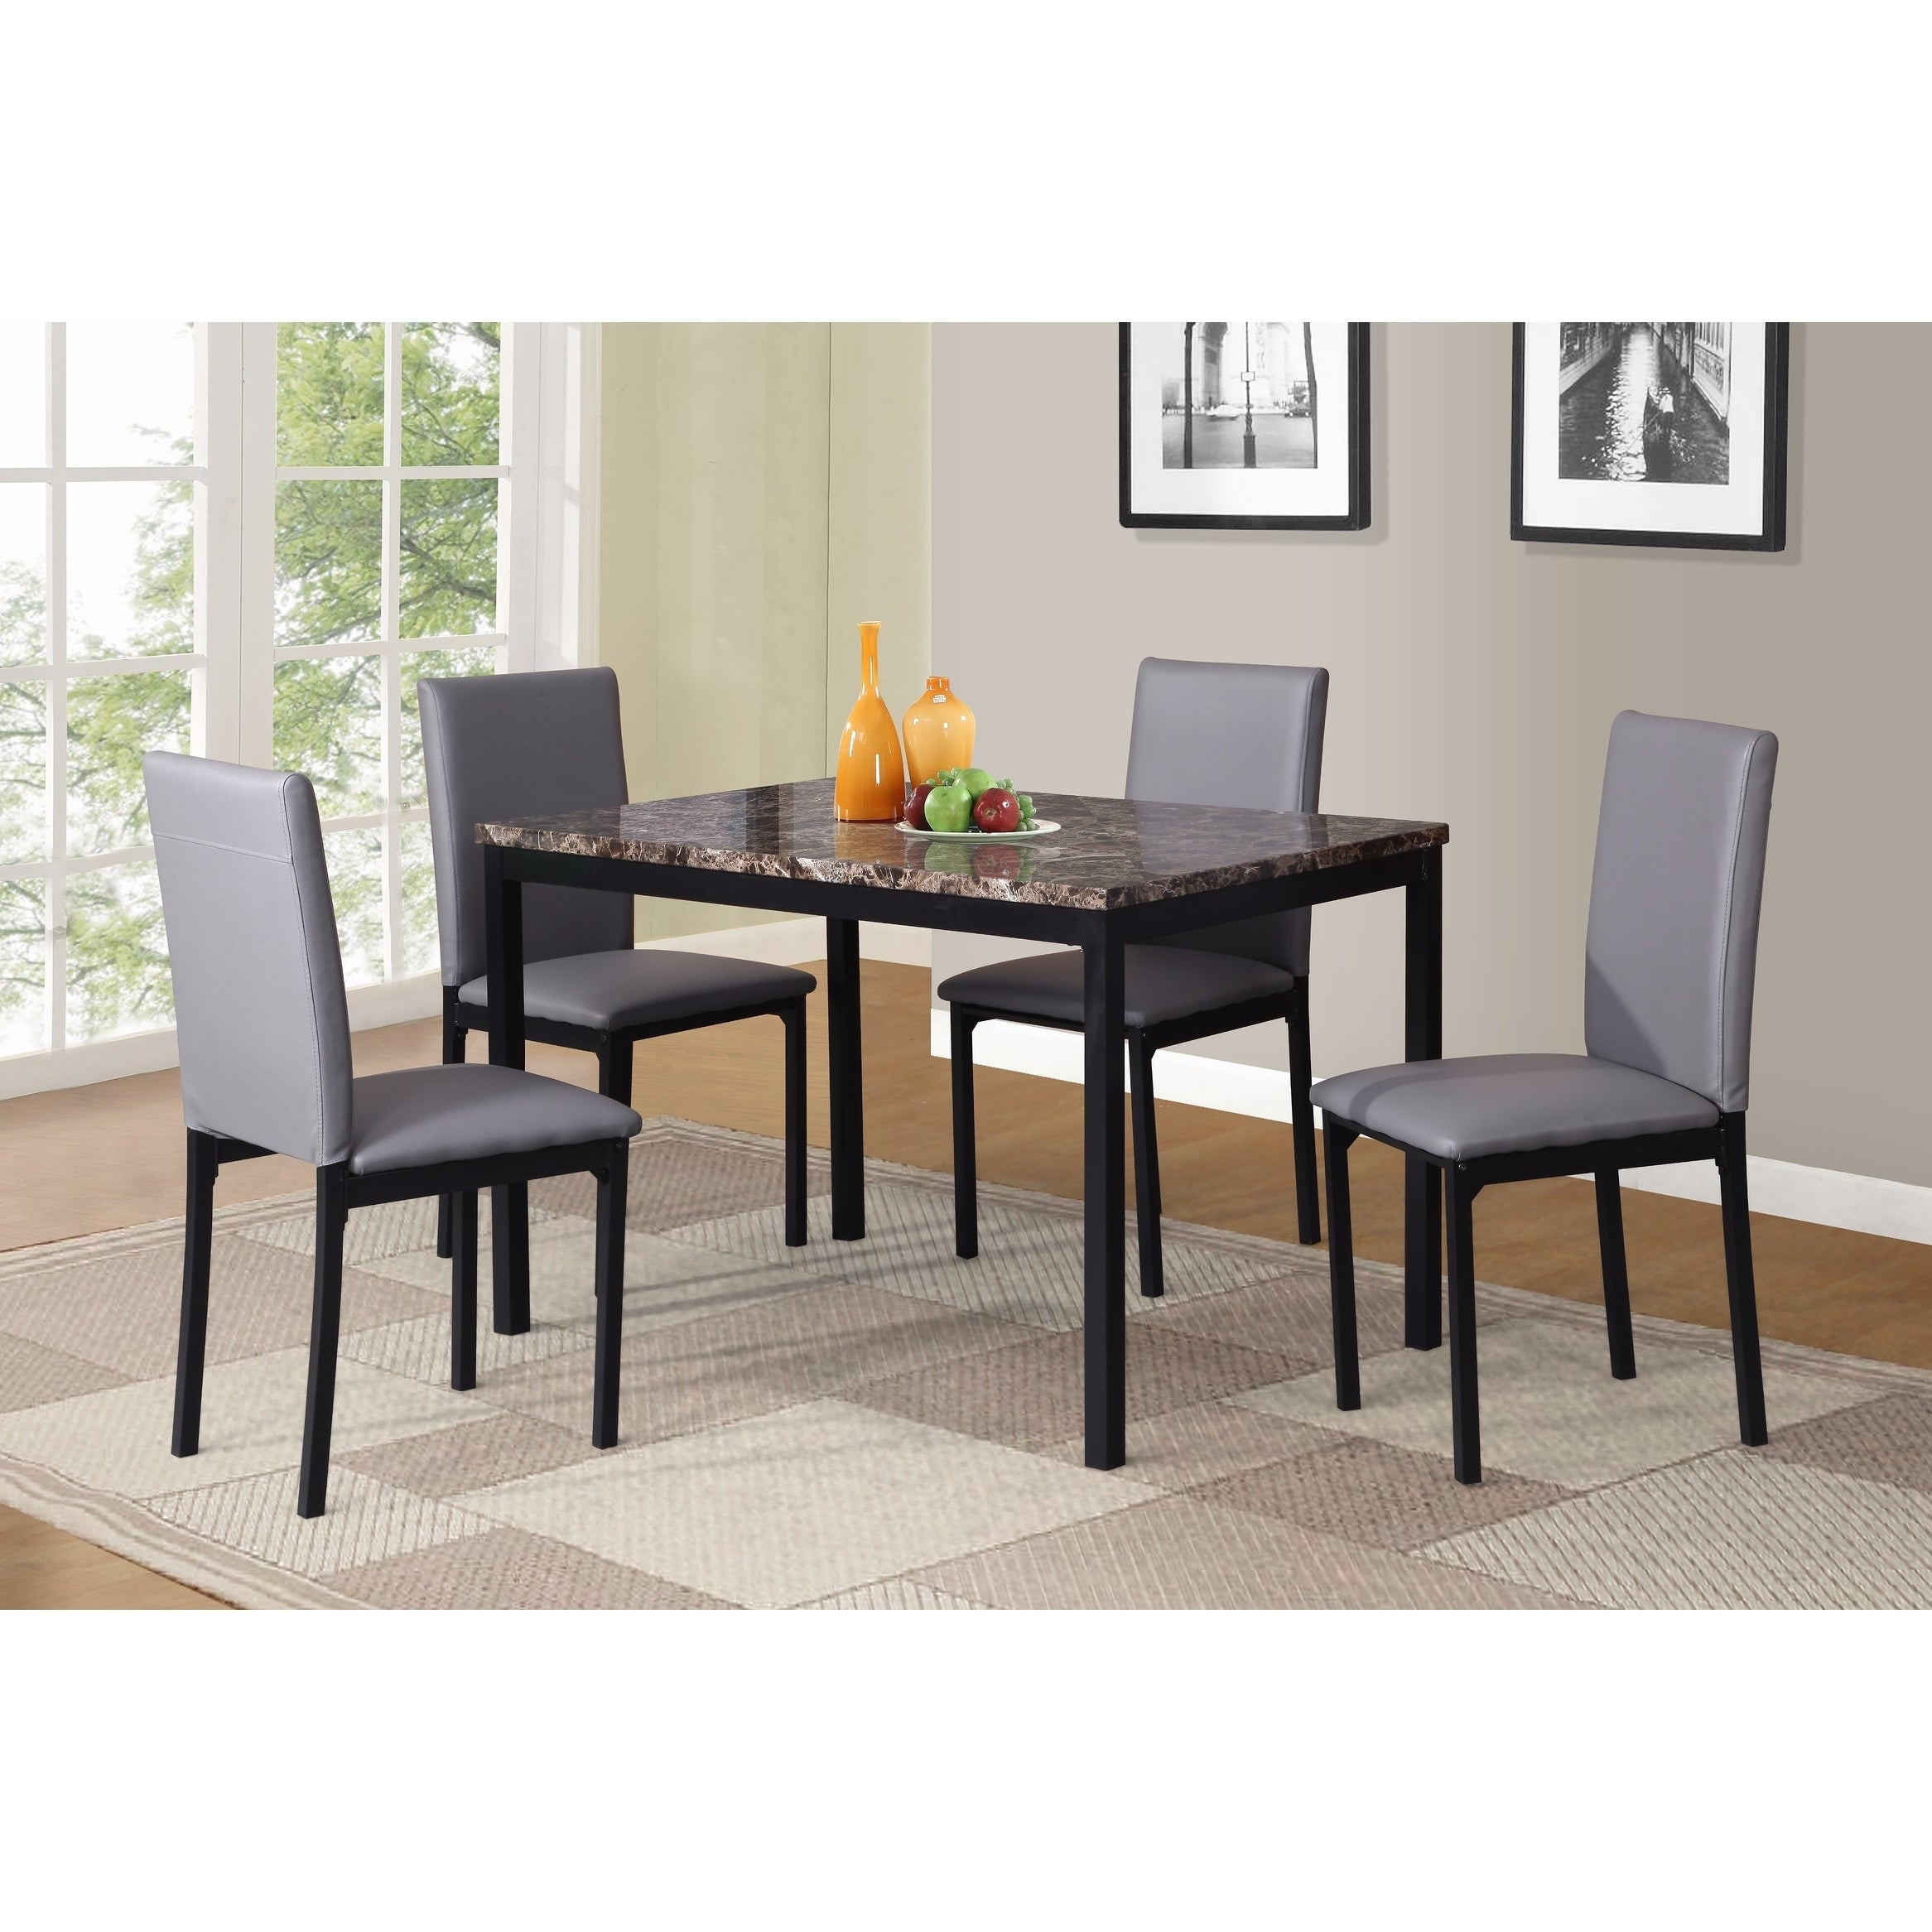 Shop Noyes Faux Leather Seat Metal Frame Black Dining Chairs, Set Of For Famous Noyes 5 Piece Dining Sets (#14 of 20)